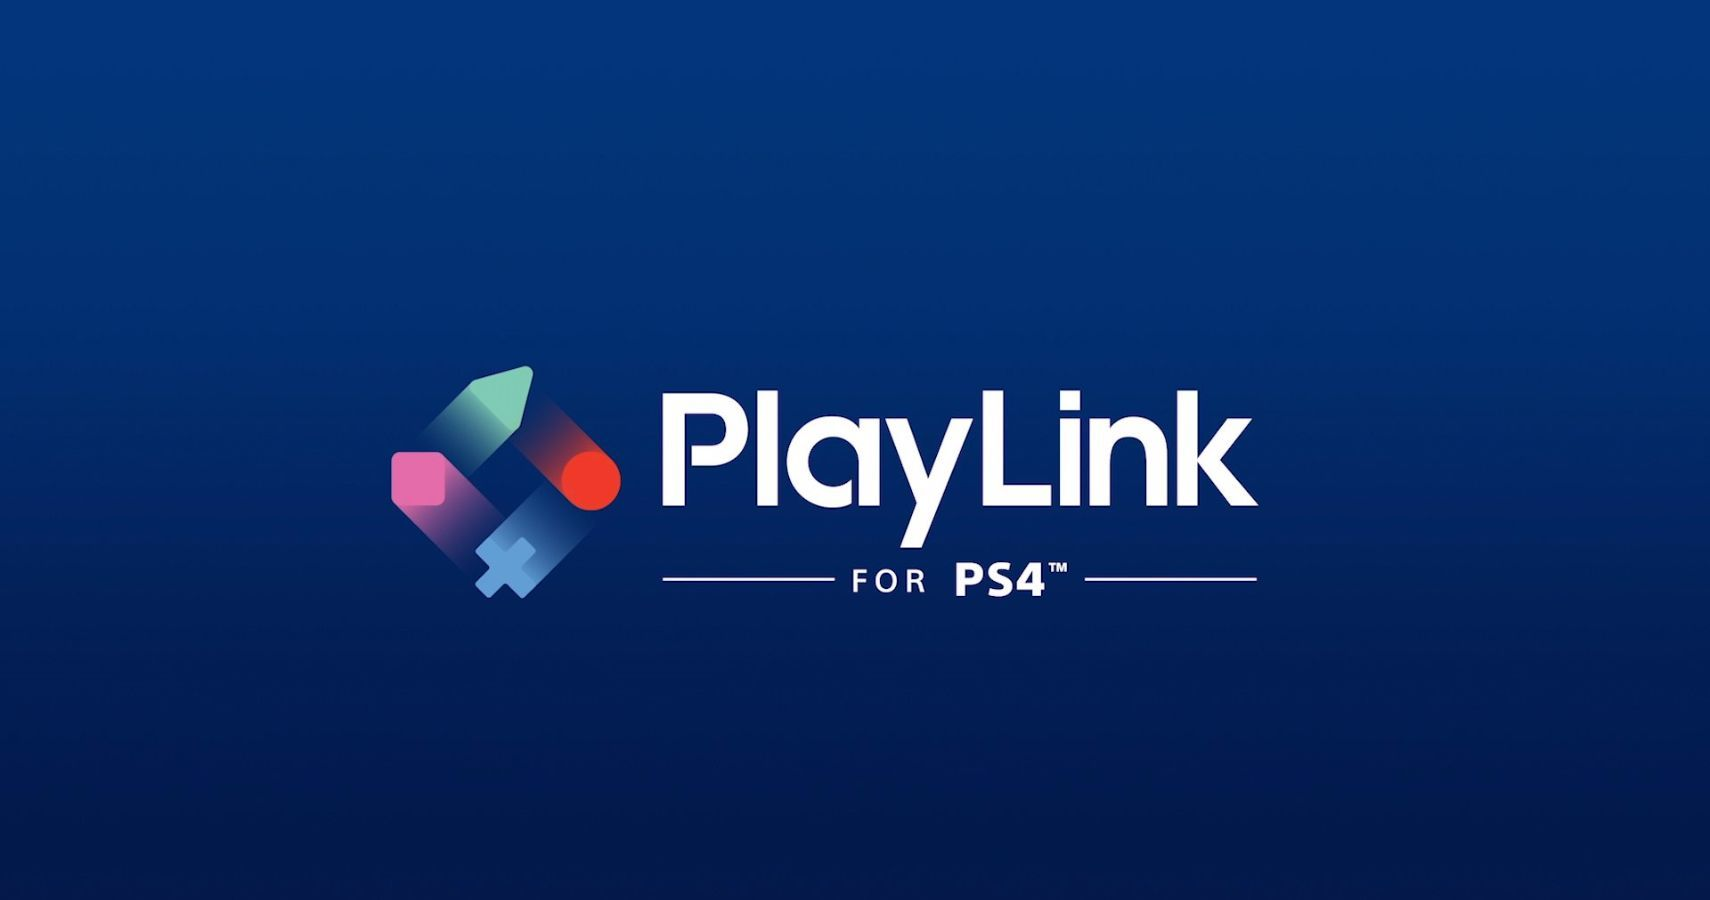 Sony Confirms PS5 Will Support PlayLink Games Via Backwards Compatibility